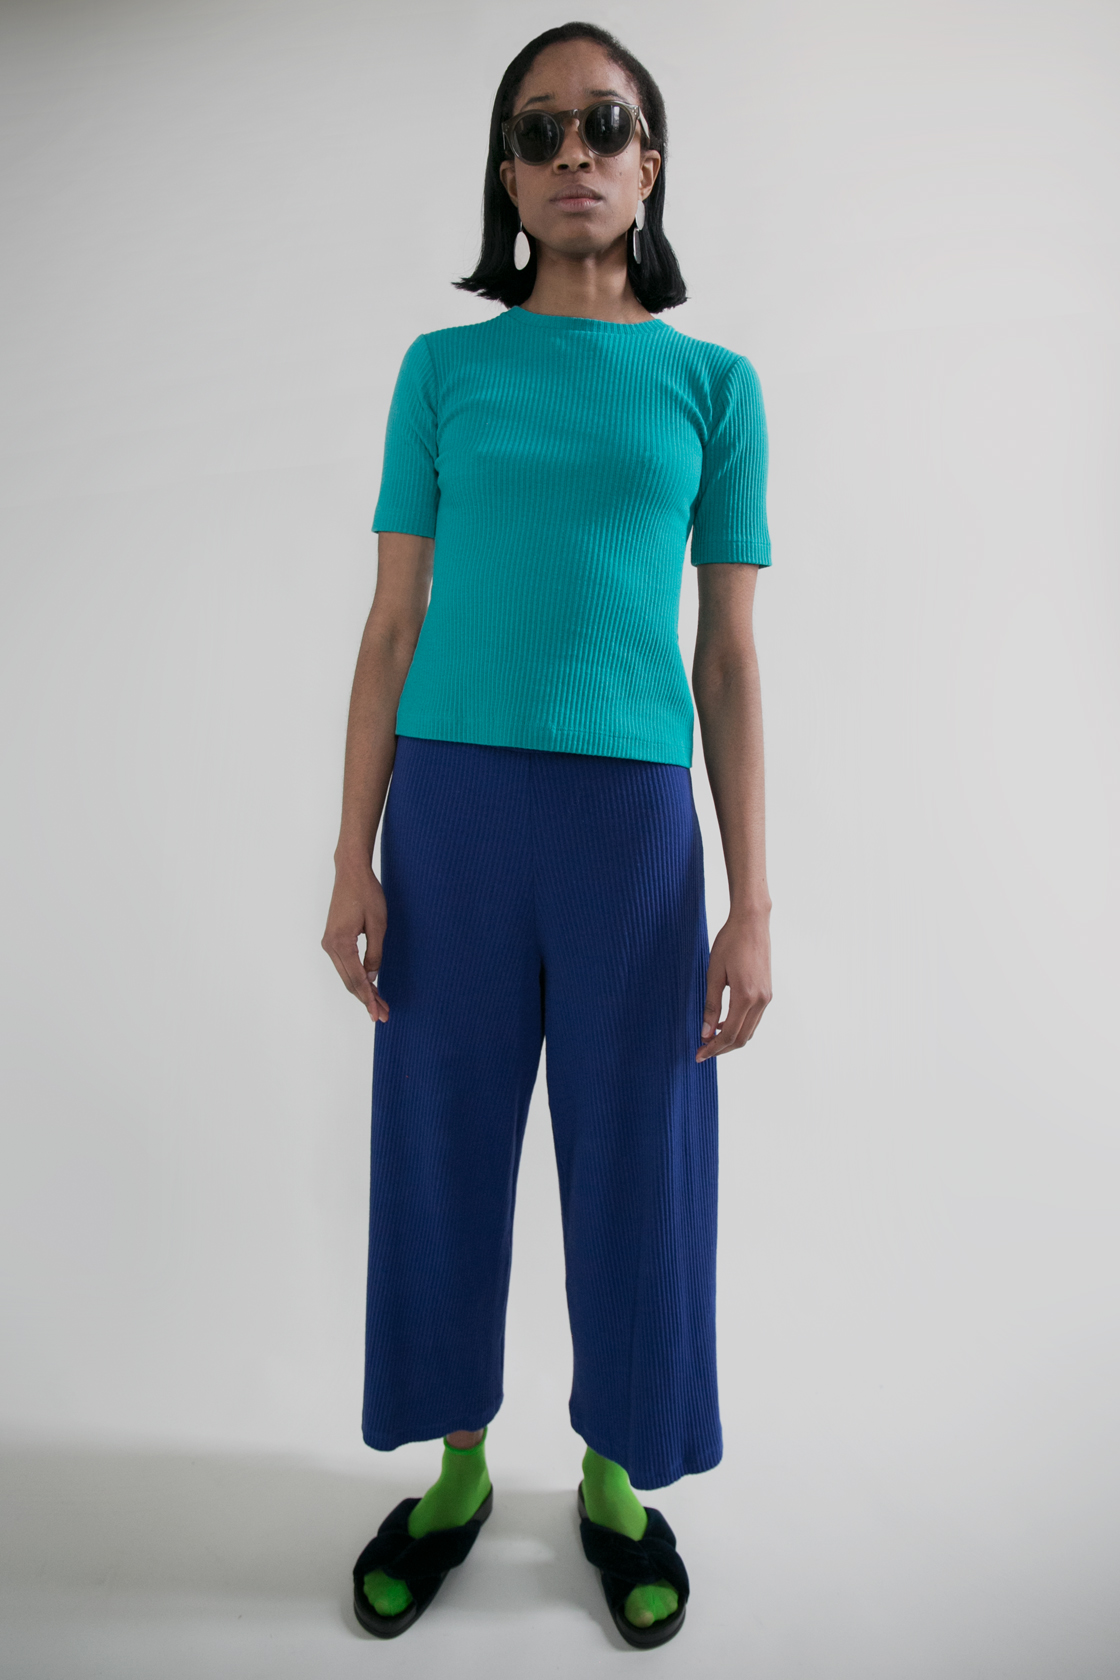 Basic Color Pant in Cobalt  XS S M L  $228